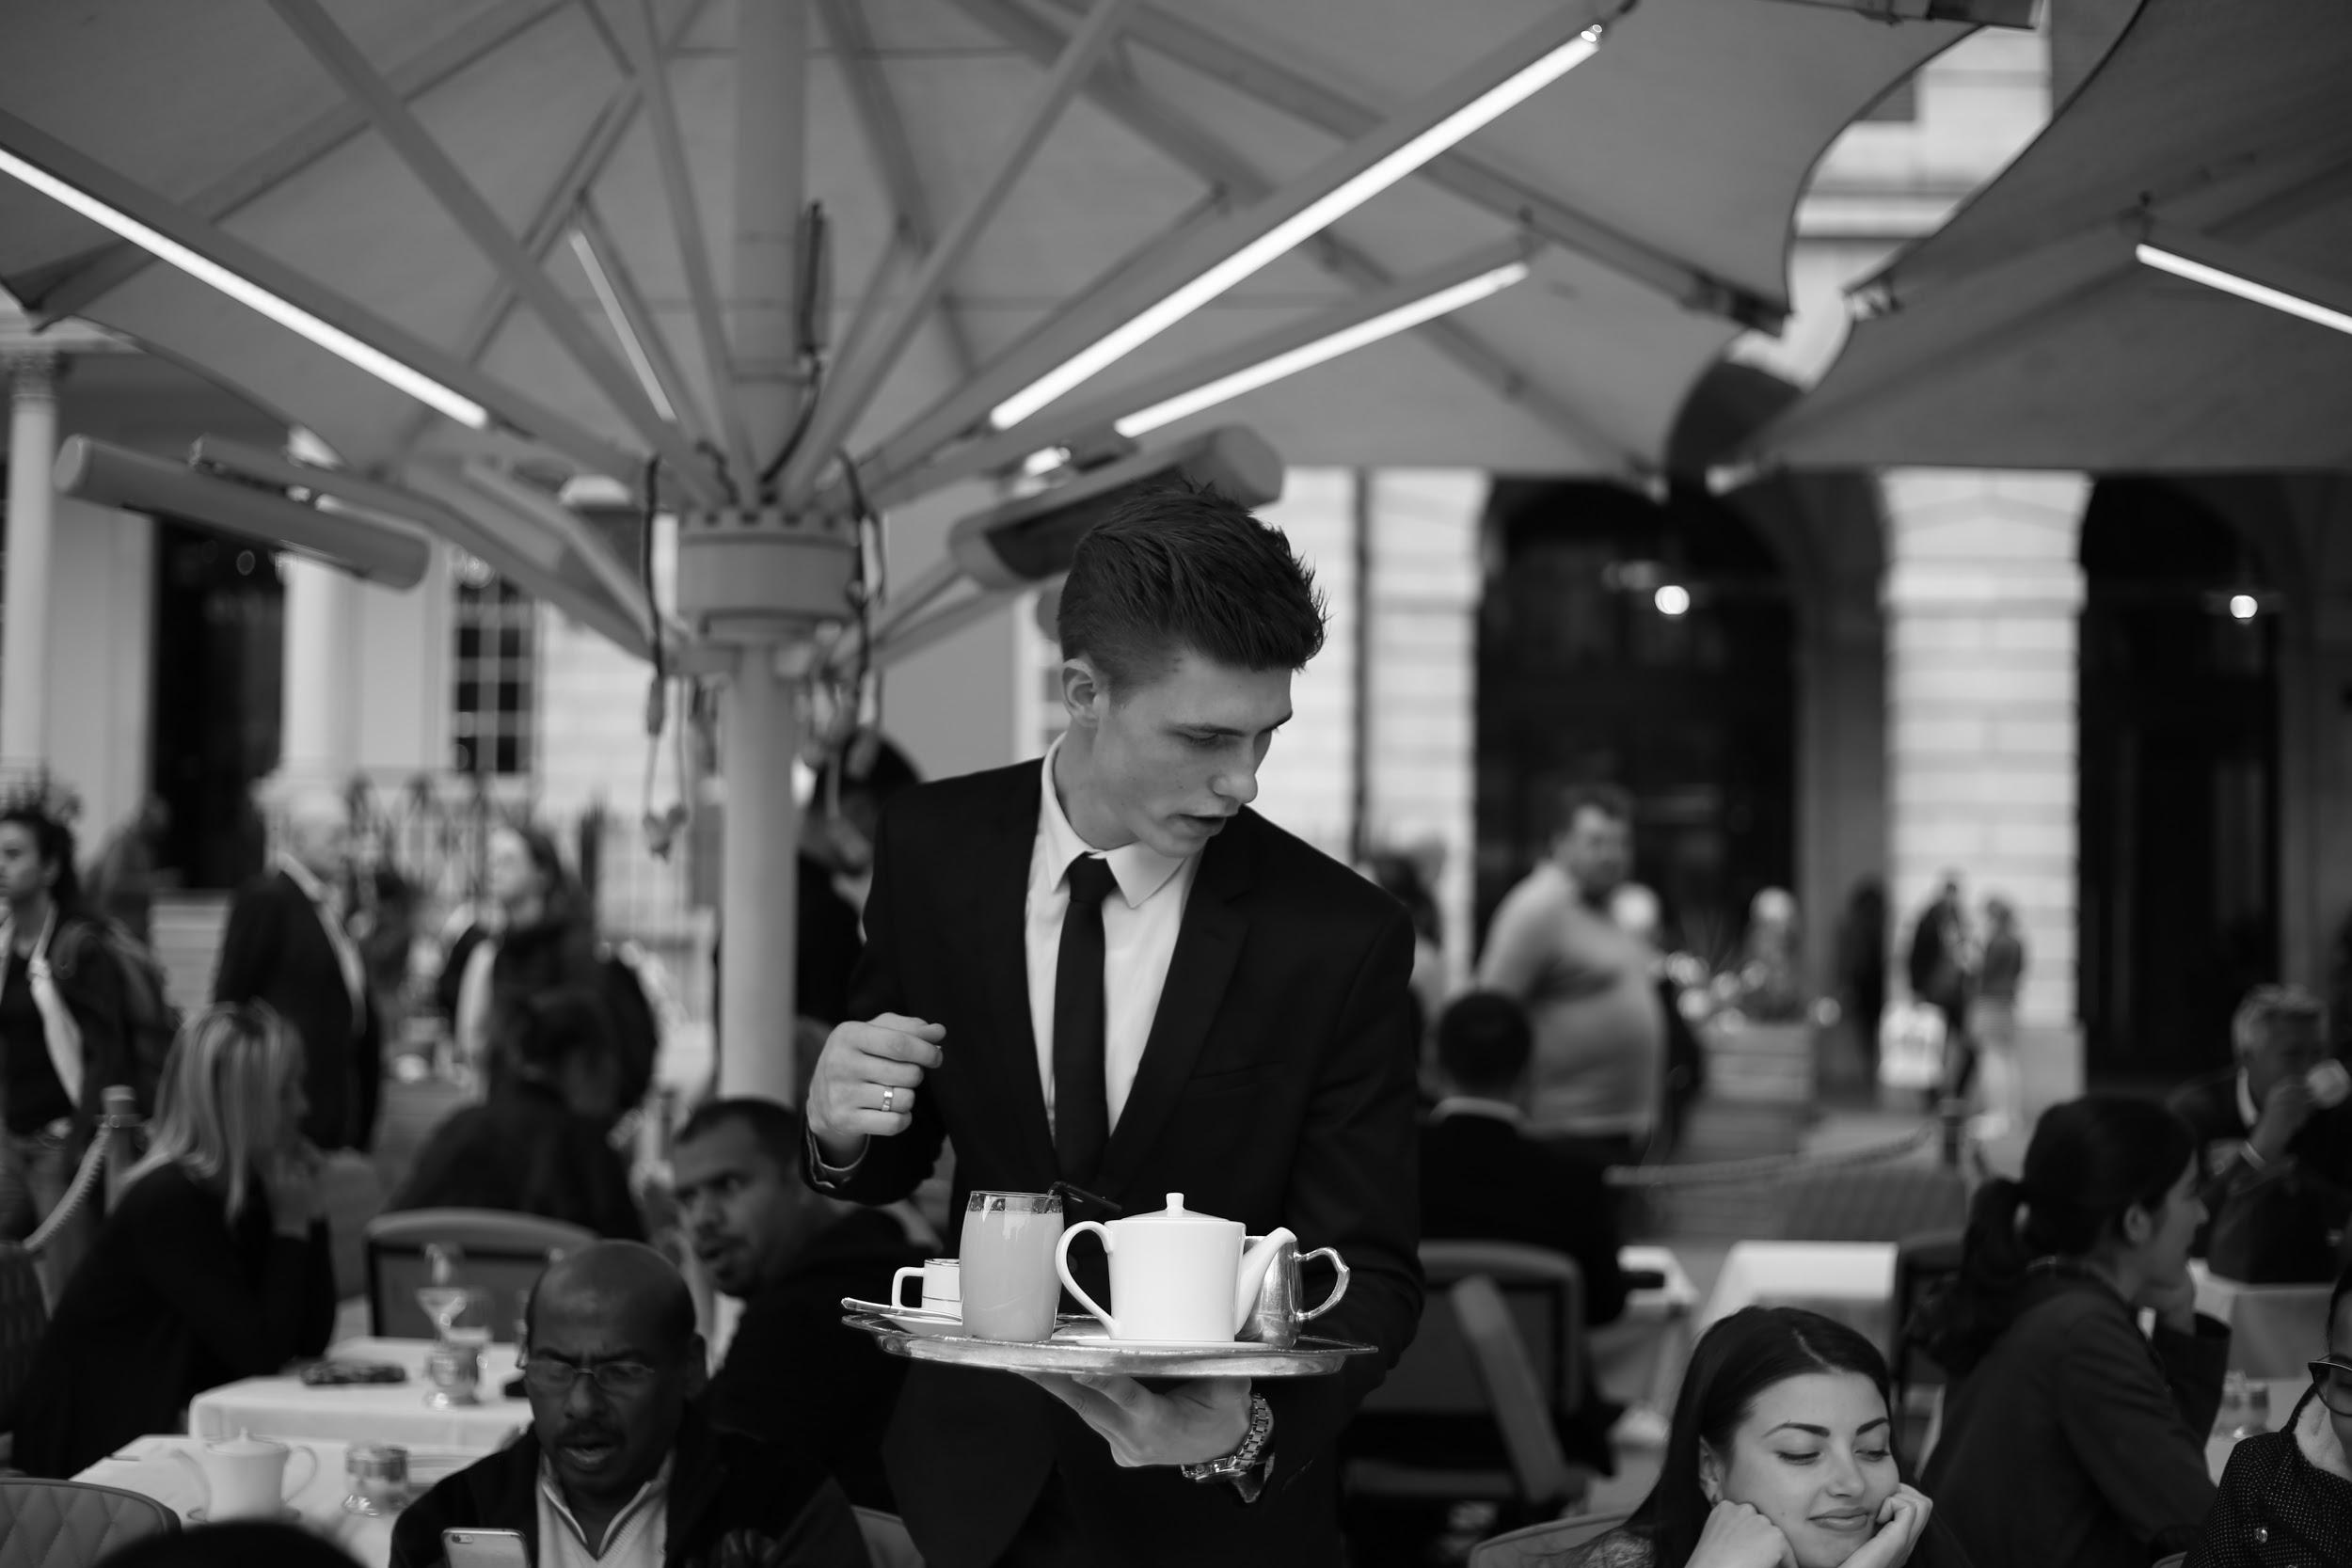 A waiter carrying coffee in a black and white image